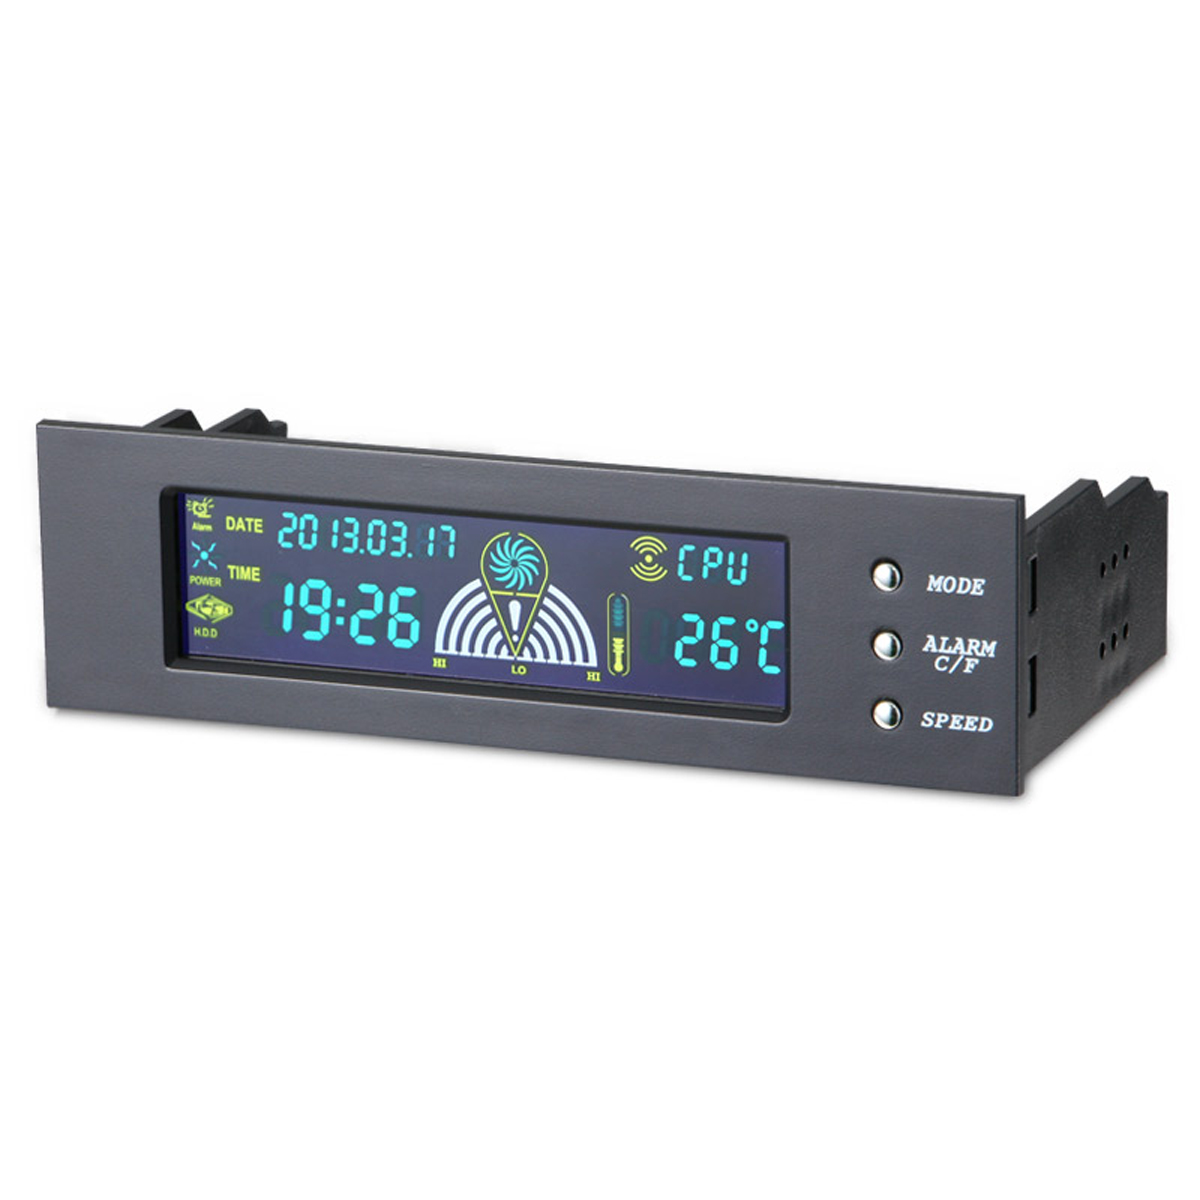 5.25 inch Bay Front LCD Panel 3 Fan Speed Controller CPU Temperature Sensor LCD Digital Display Front Panel for PC Computer aerocool cooltouch r pc fan speed controller with lcd display usb 3 0 card reader control panel computer fan controller